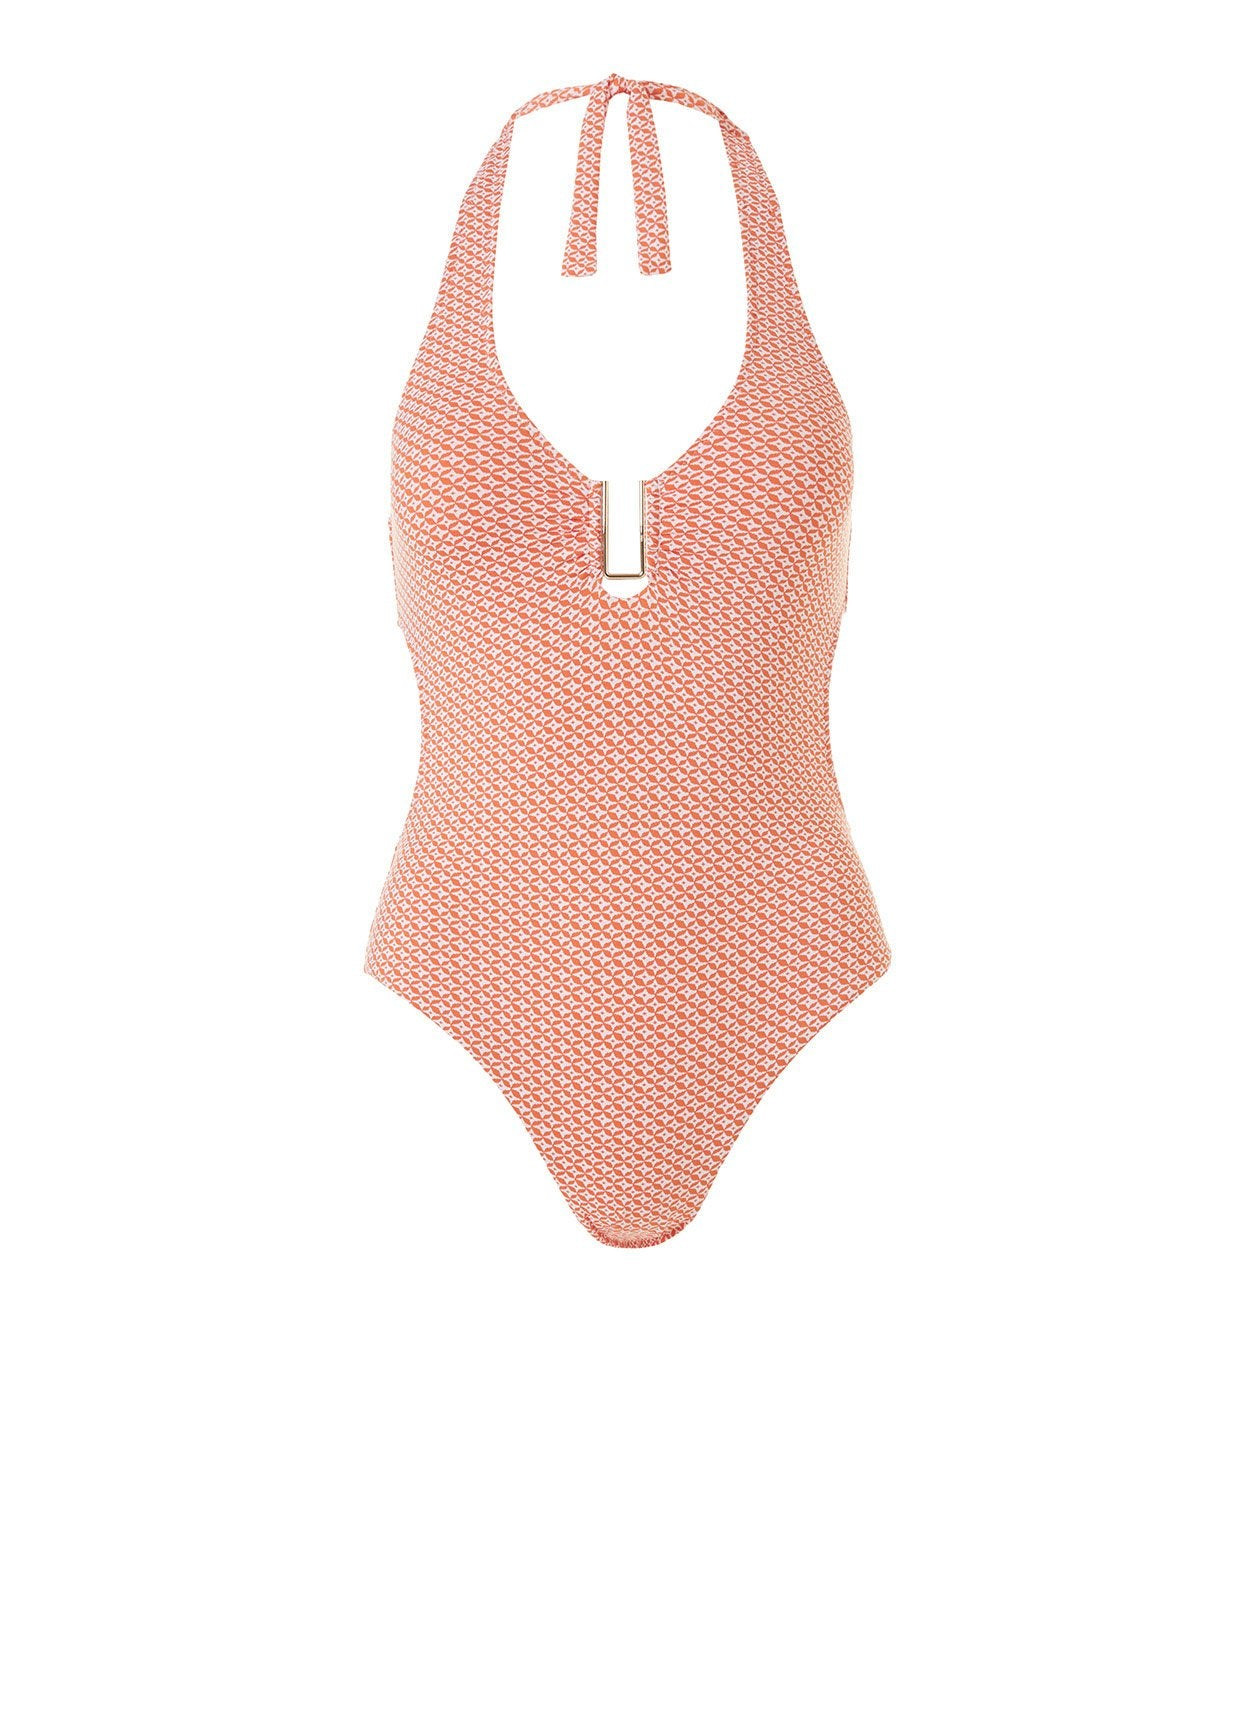 sahara mosaic orange halterneck swimsuit